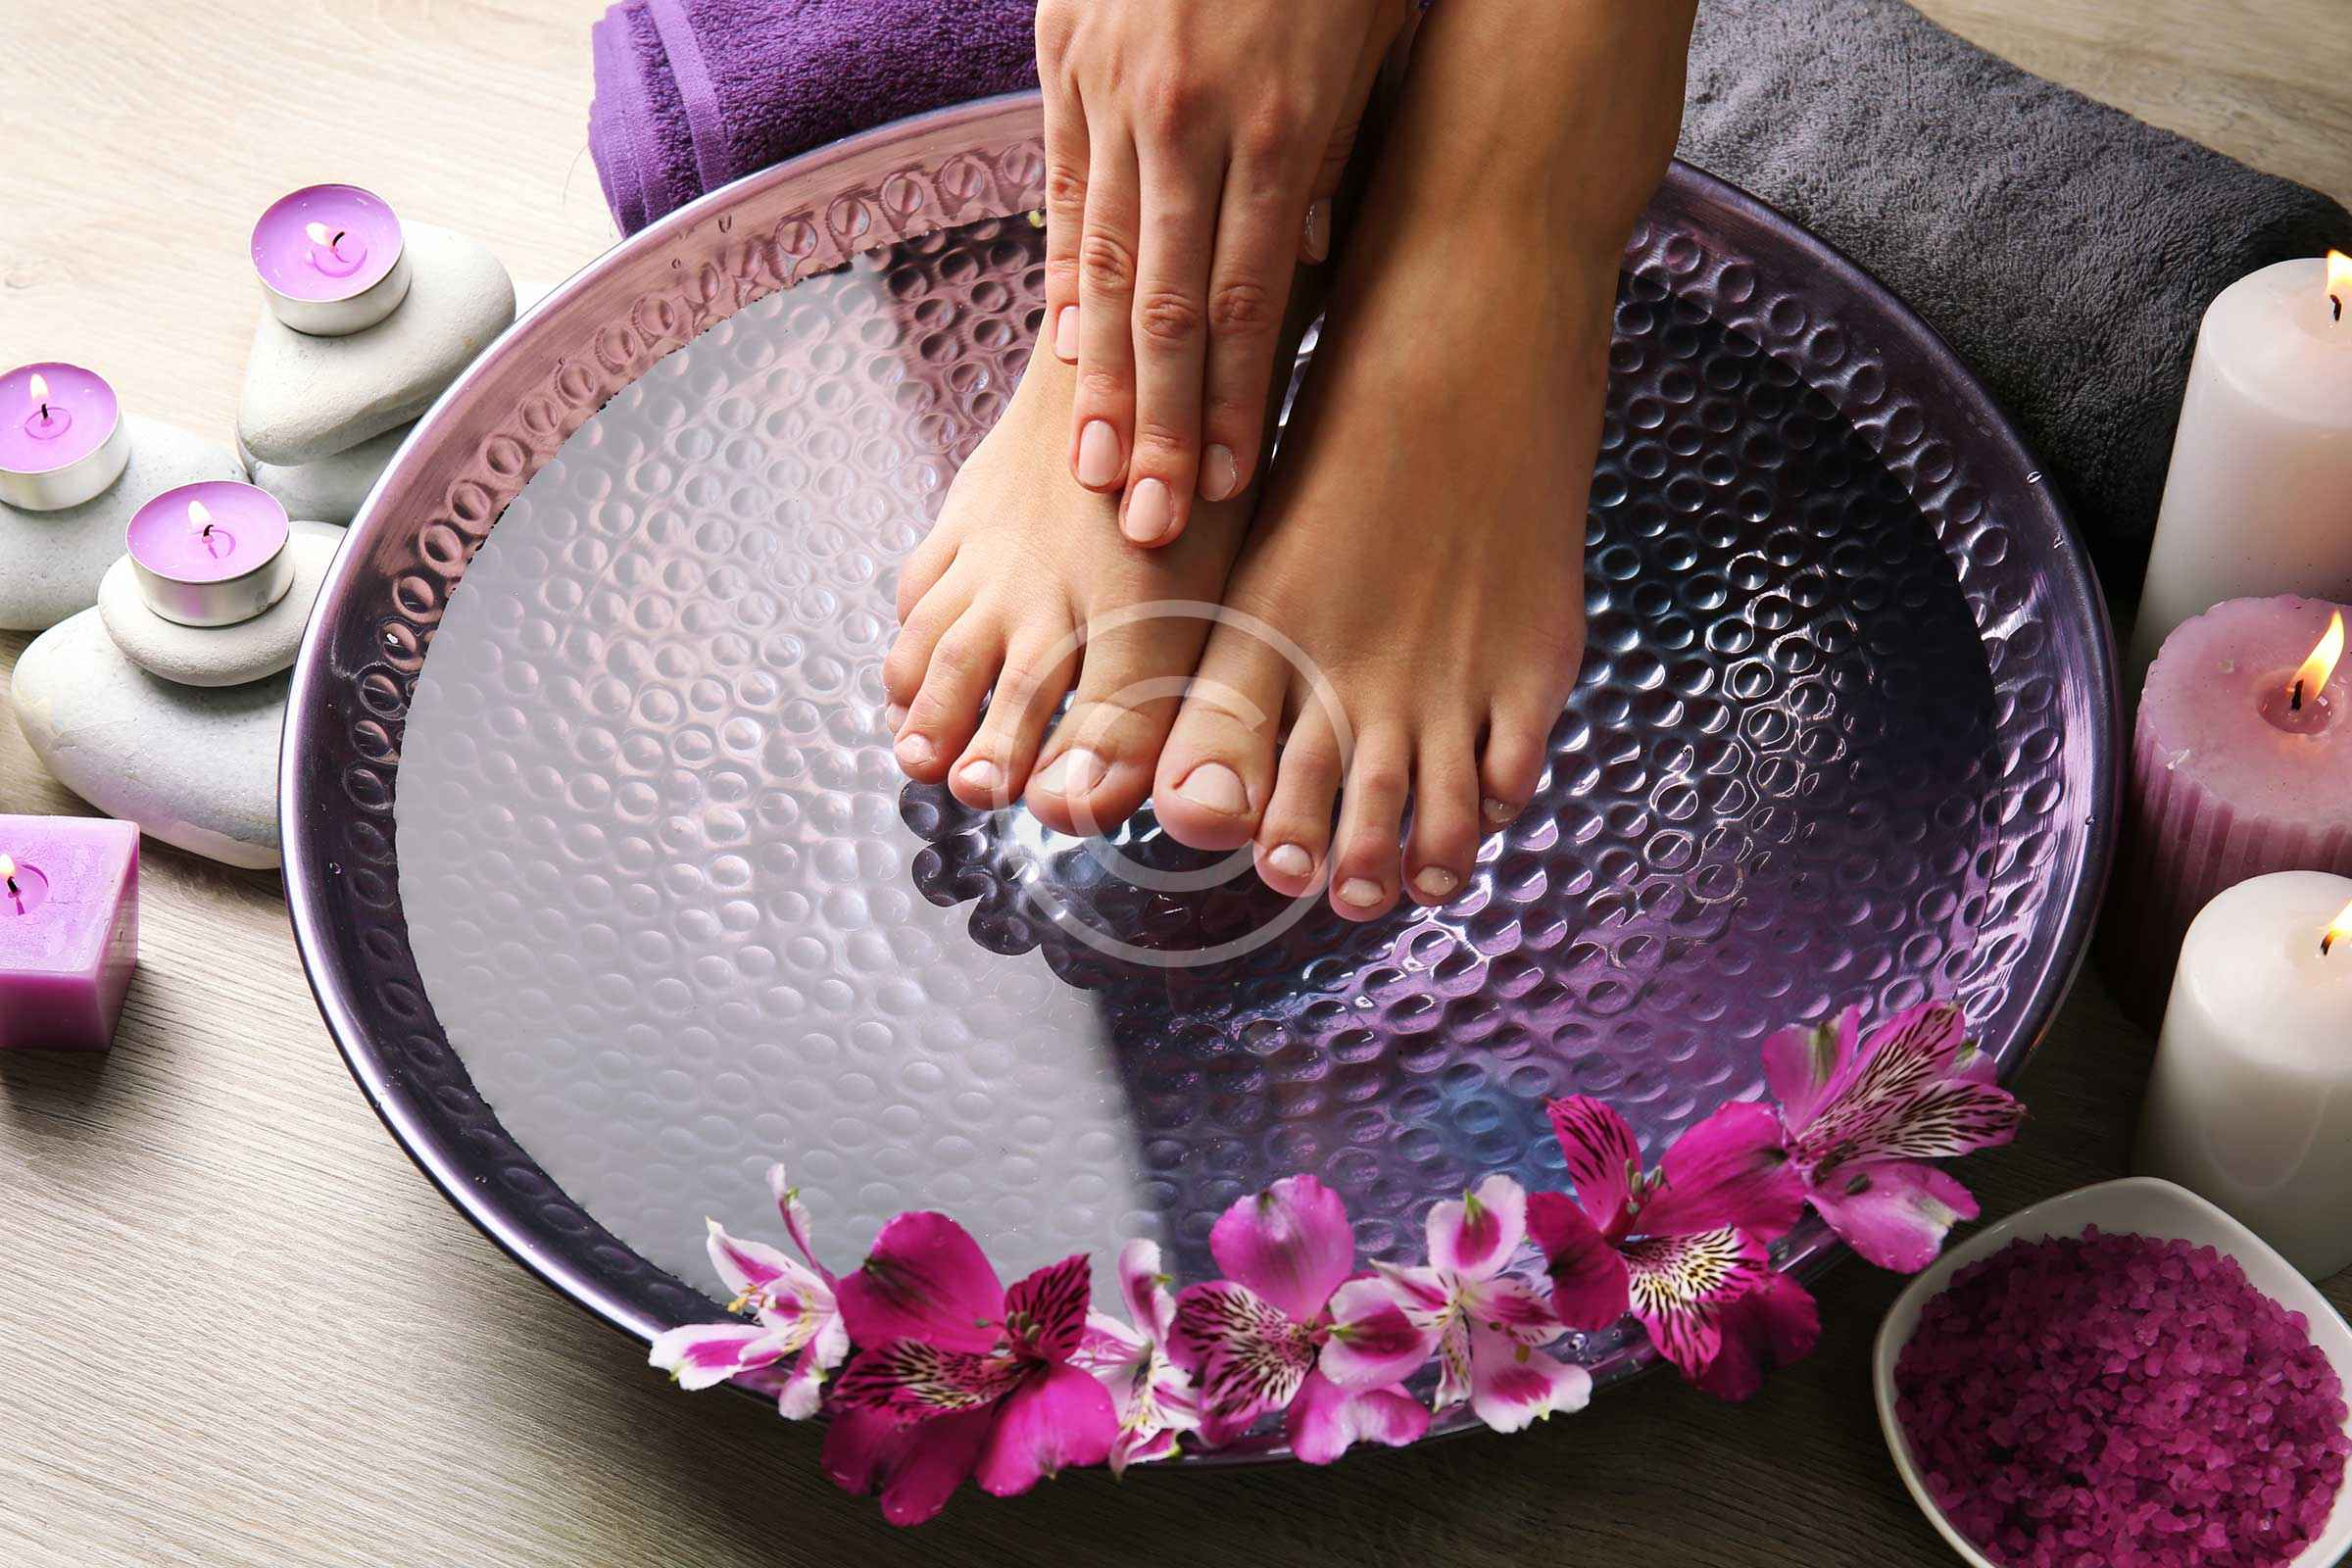 How massage loses its value